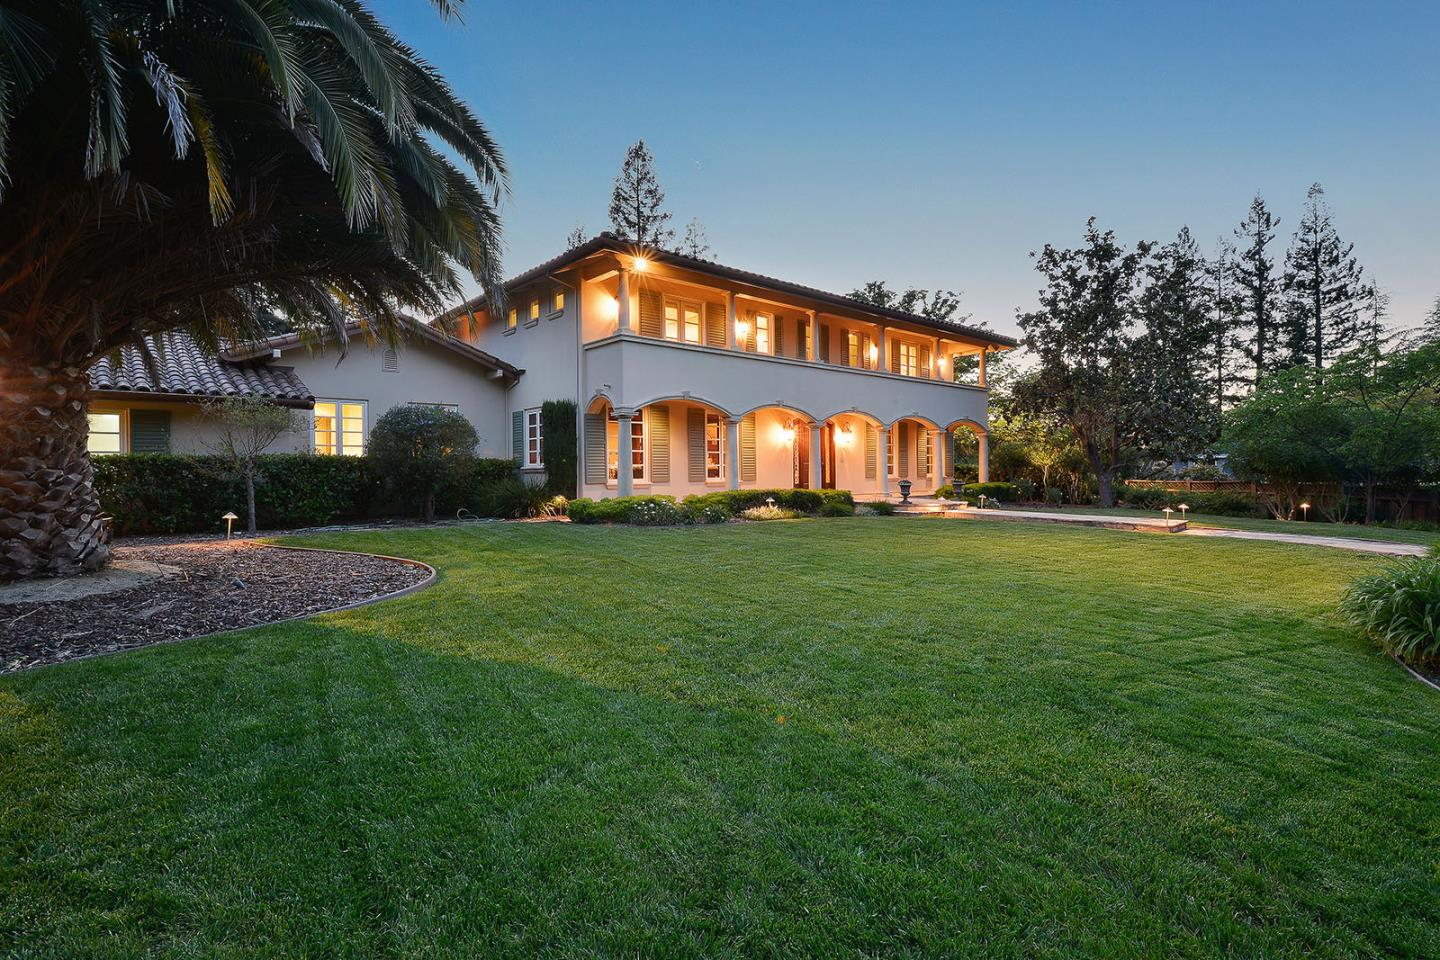 Additional photo for property listing at 15427 Hume Drive  Saratoga, カリフォルニア 95070 アメリカ合衆国